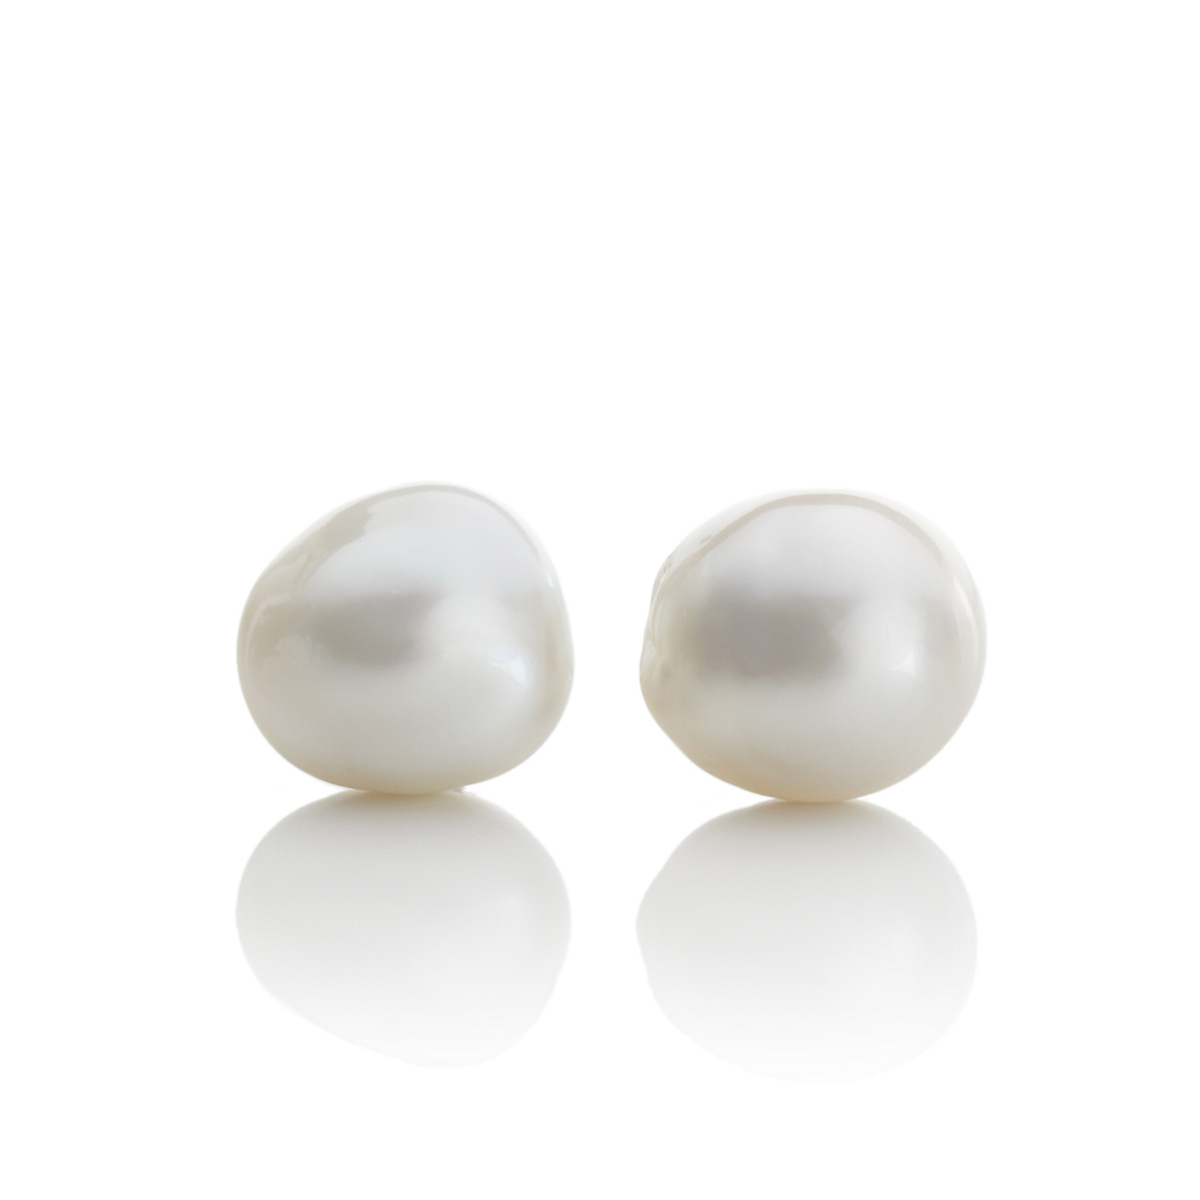 Gump's Baroque White South Sea Cultured Pearl Earrings